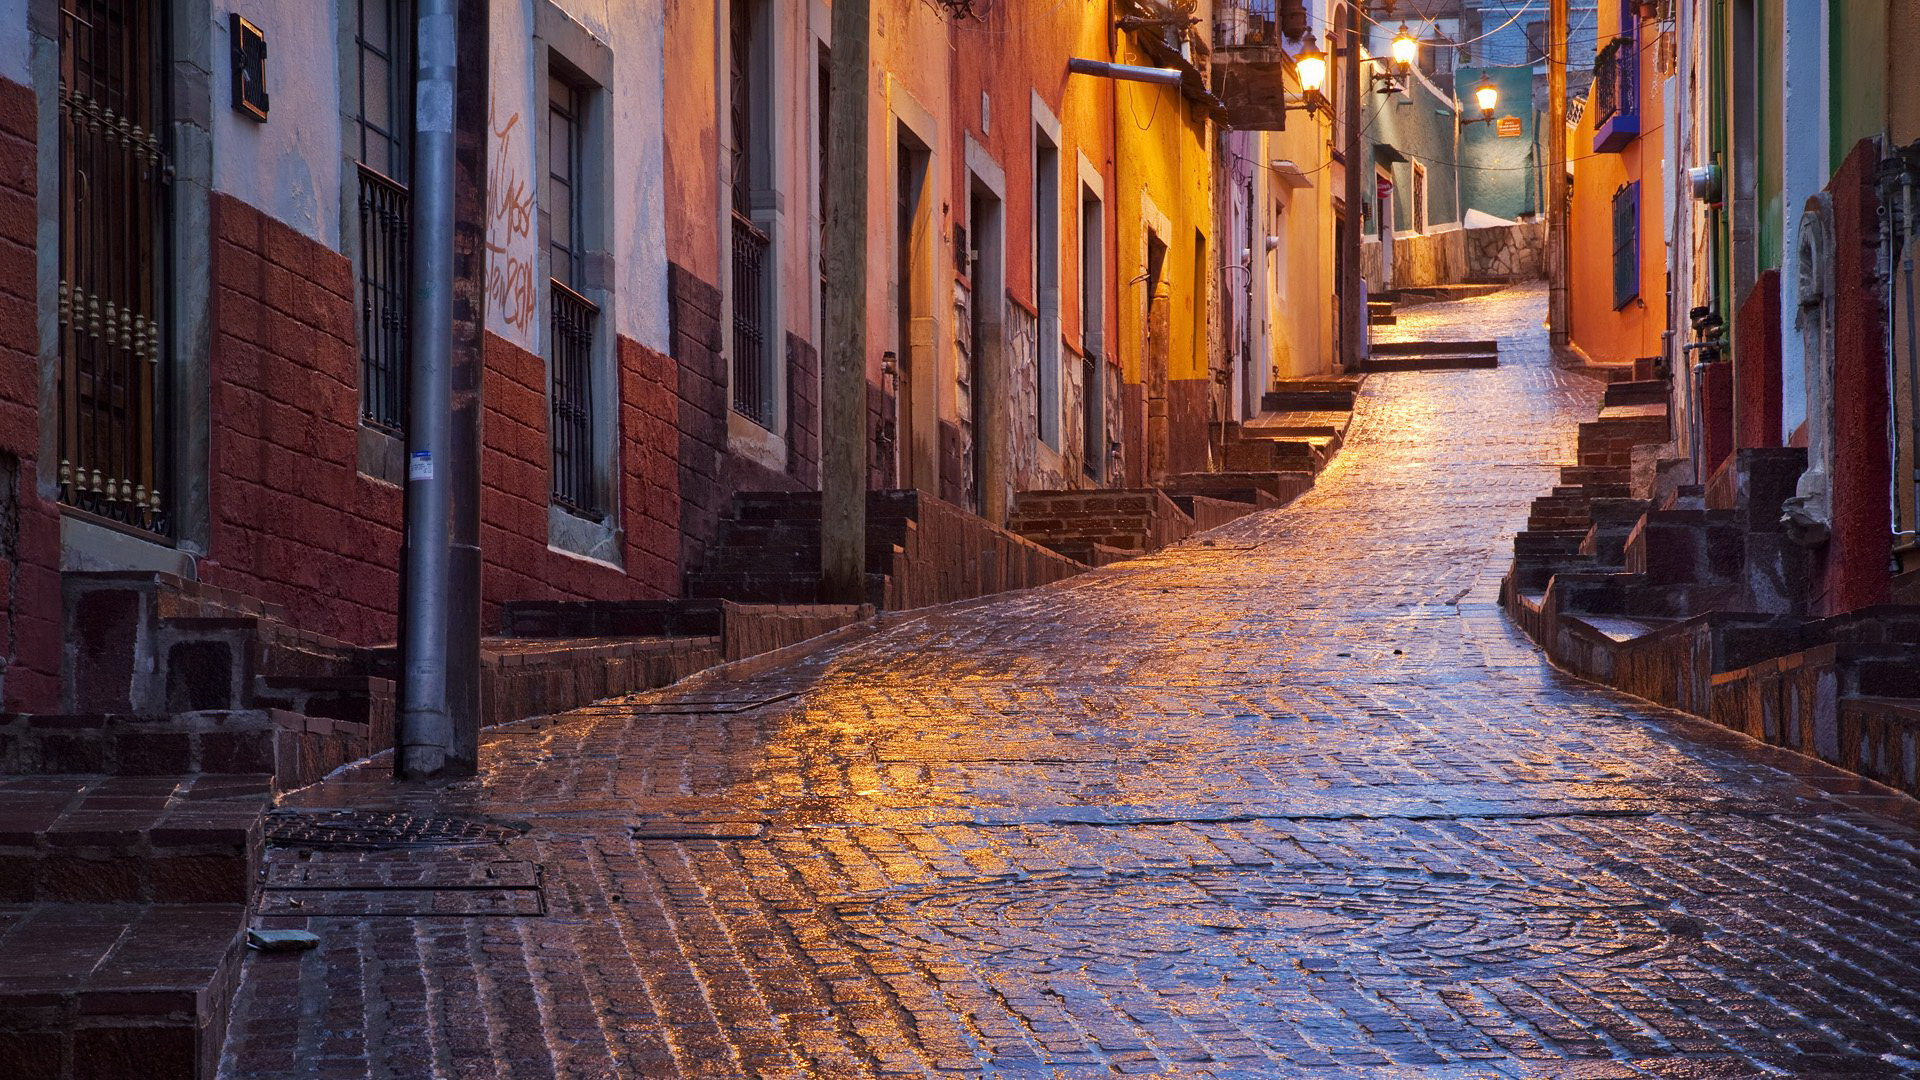 Taken before dawn in a light rain in Guanajuato, Mexico. The water slicked cobles brilliantly reflected the streetlights and sky.